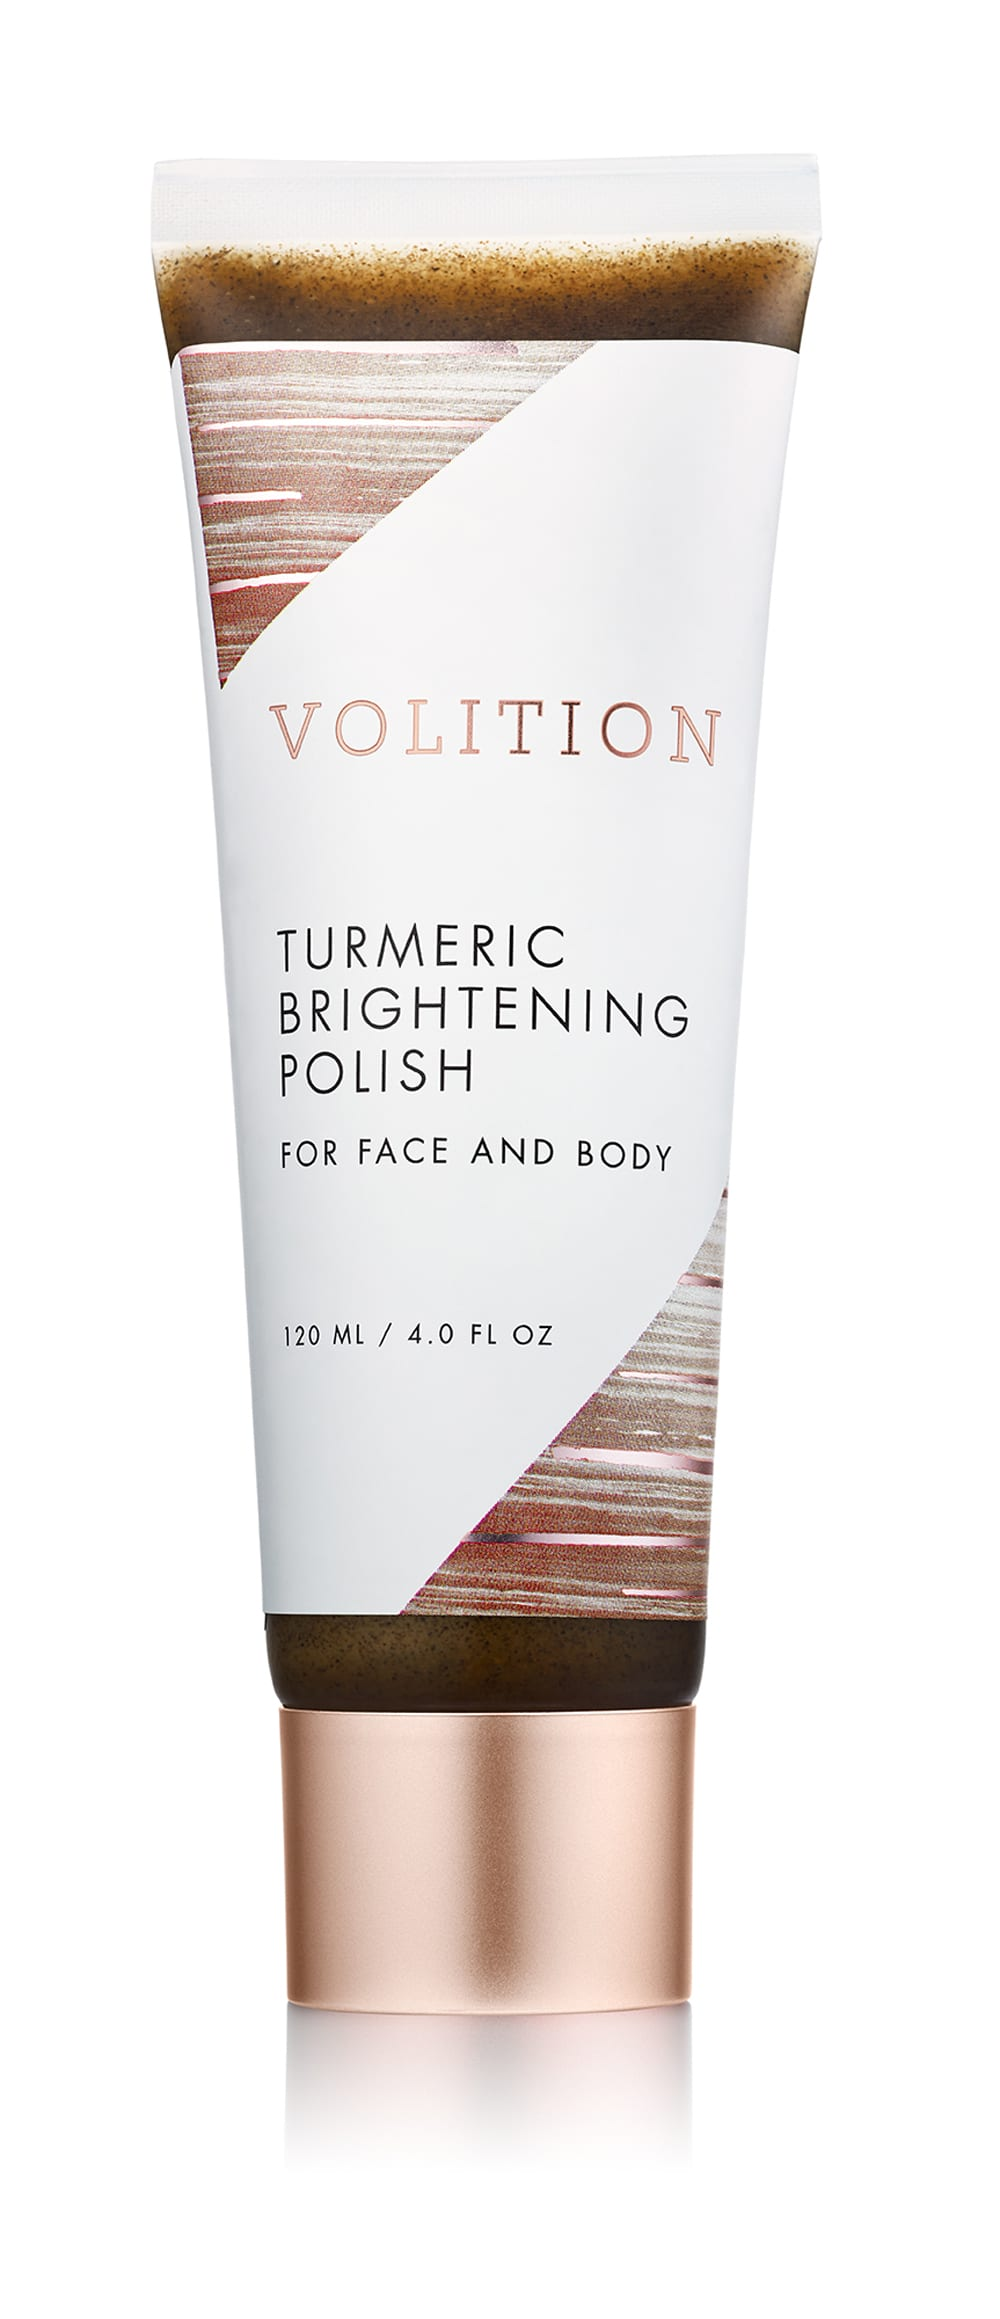 The Bridal Beauty Products Our Editors Are Currently Loving For December - turmeric brightening polish